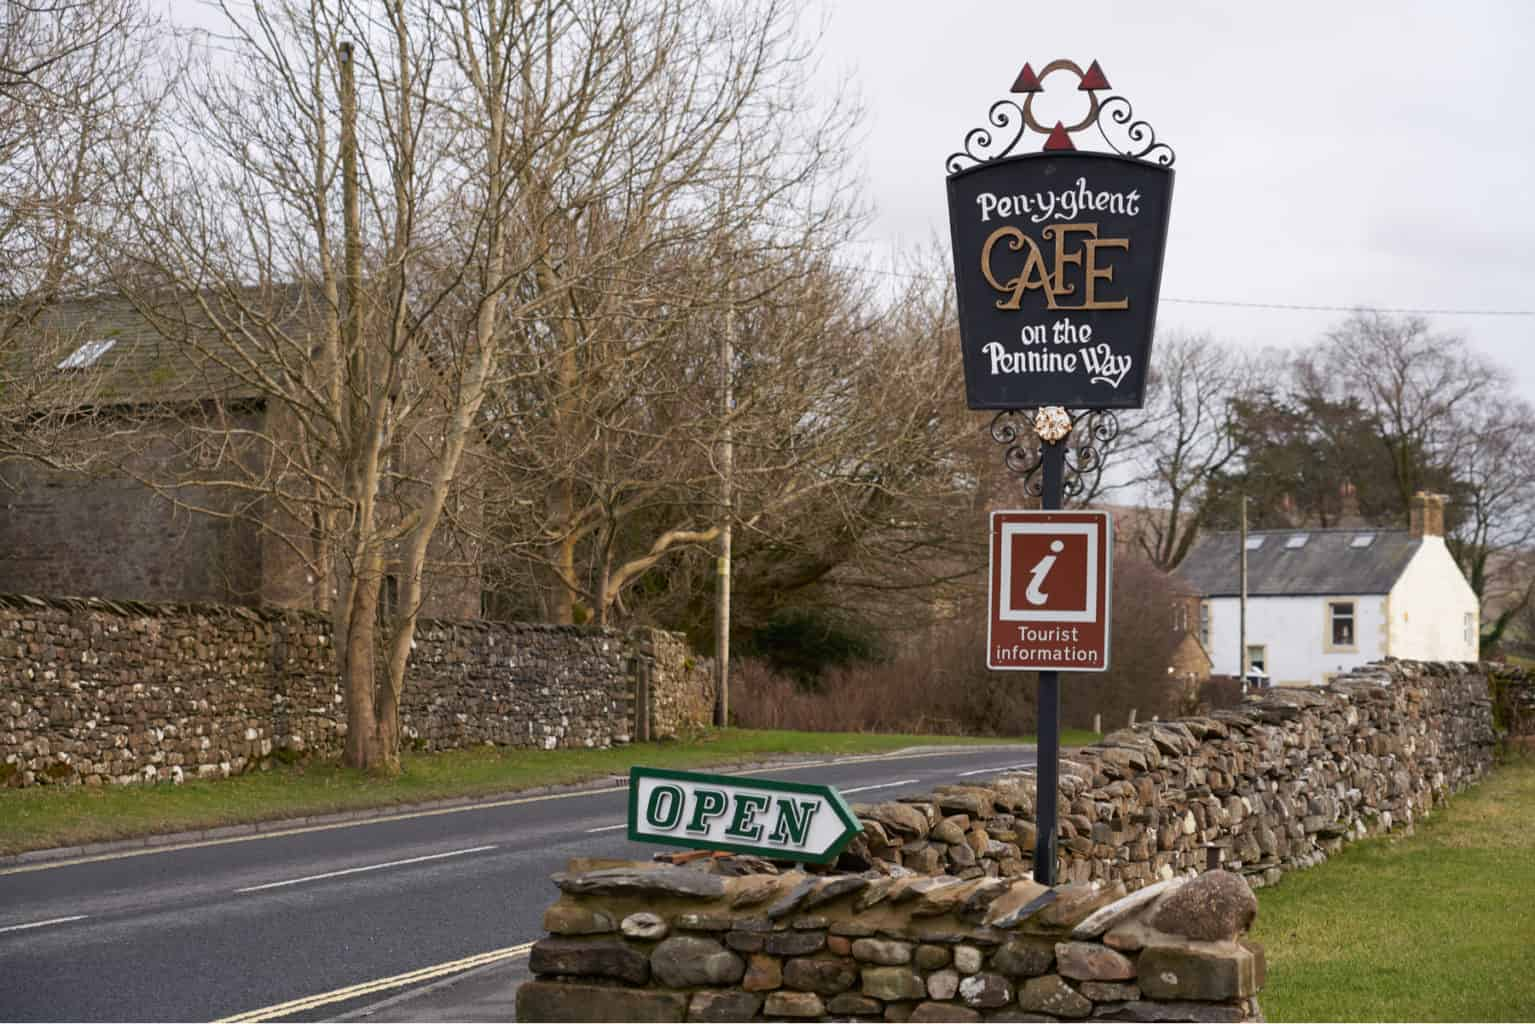 Pen-y-ghent cafe in Horton in Ribblesdale